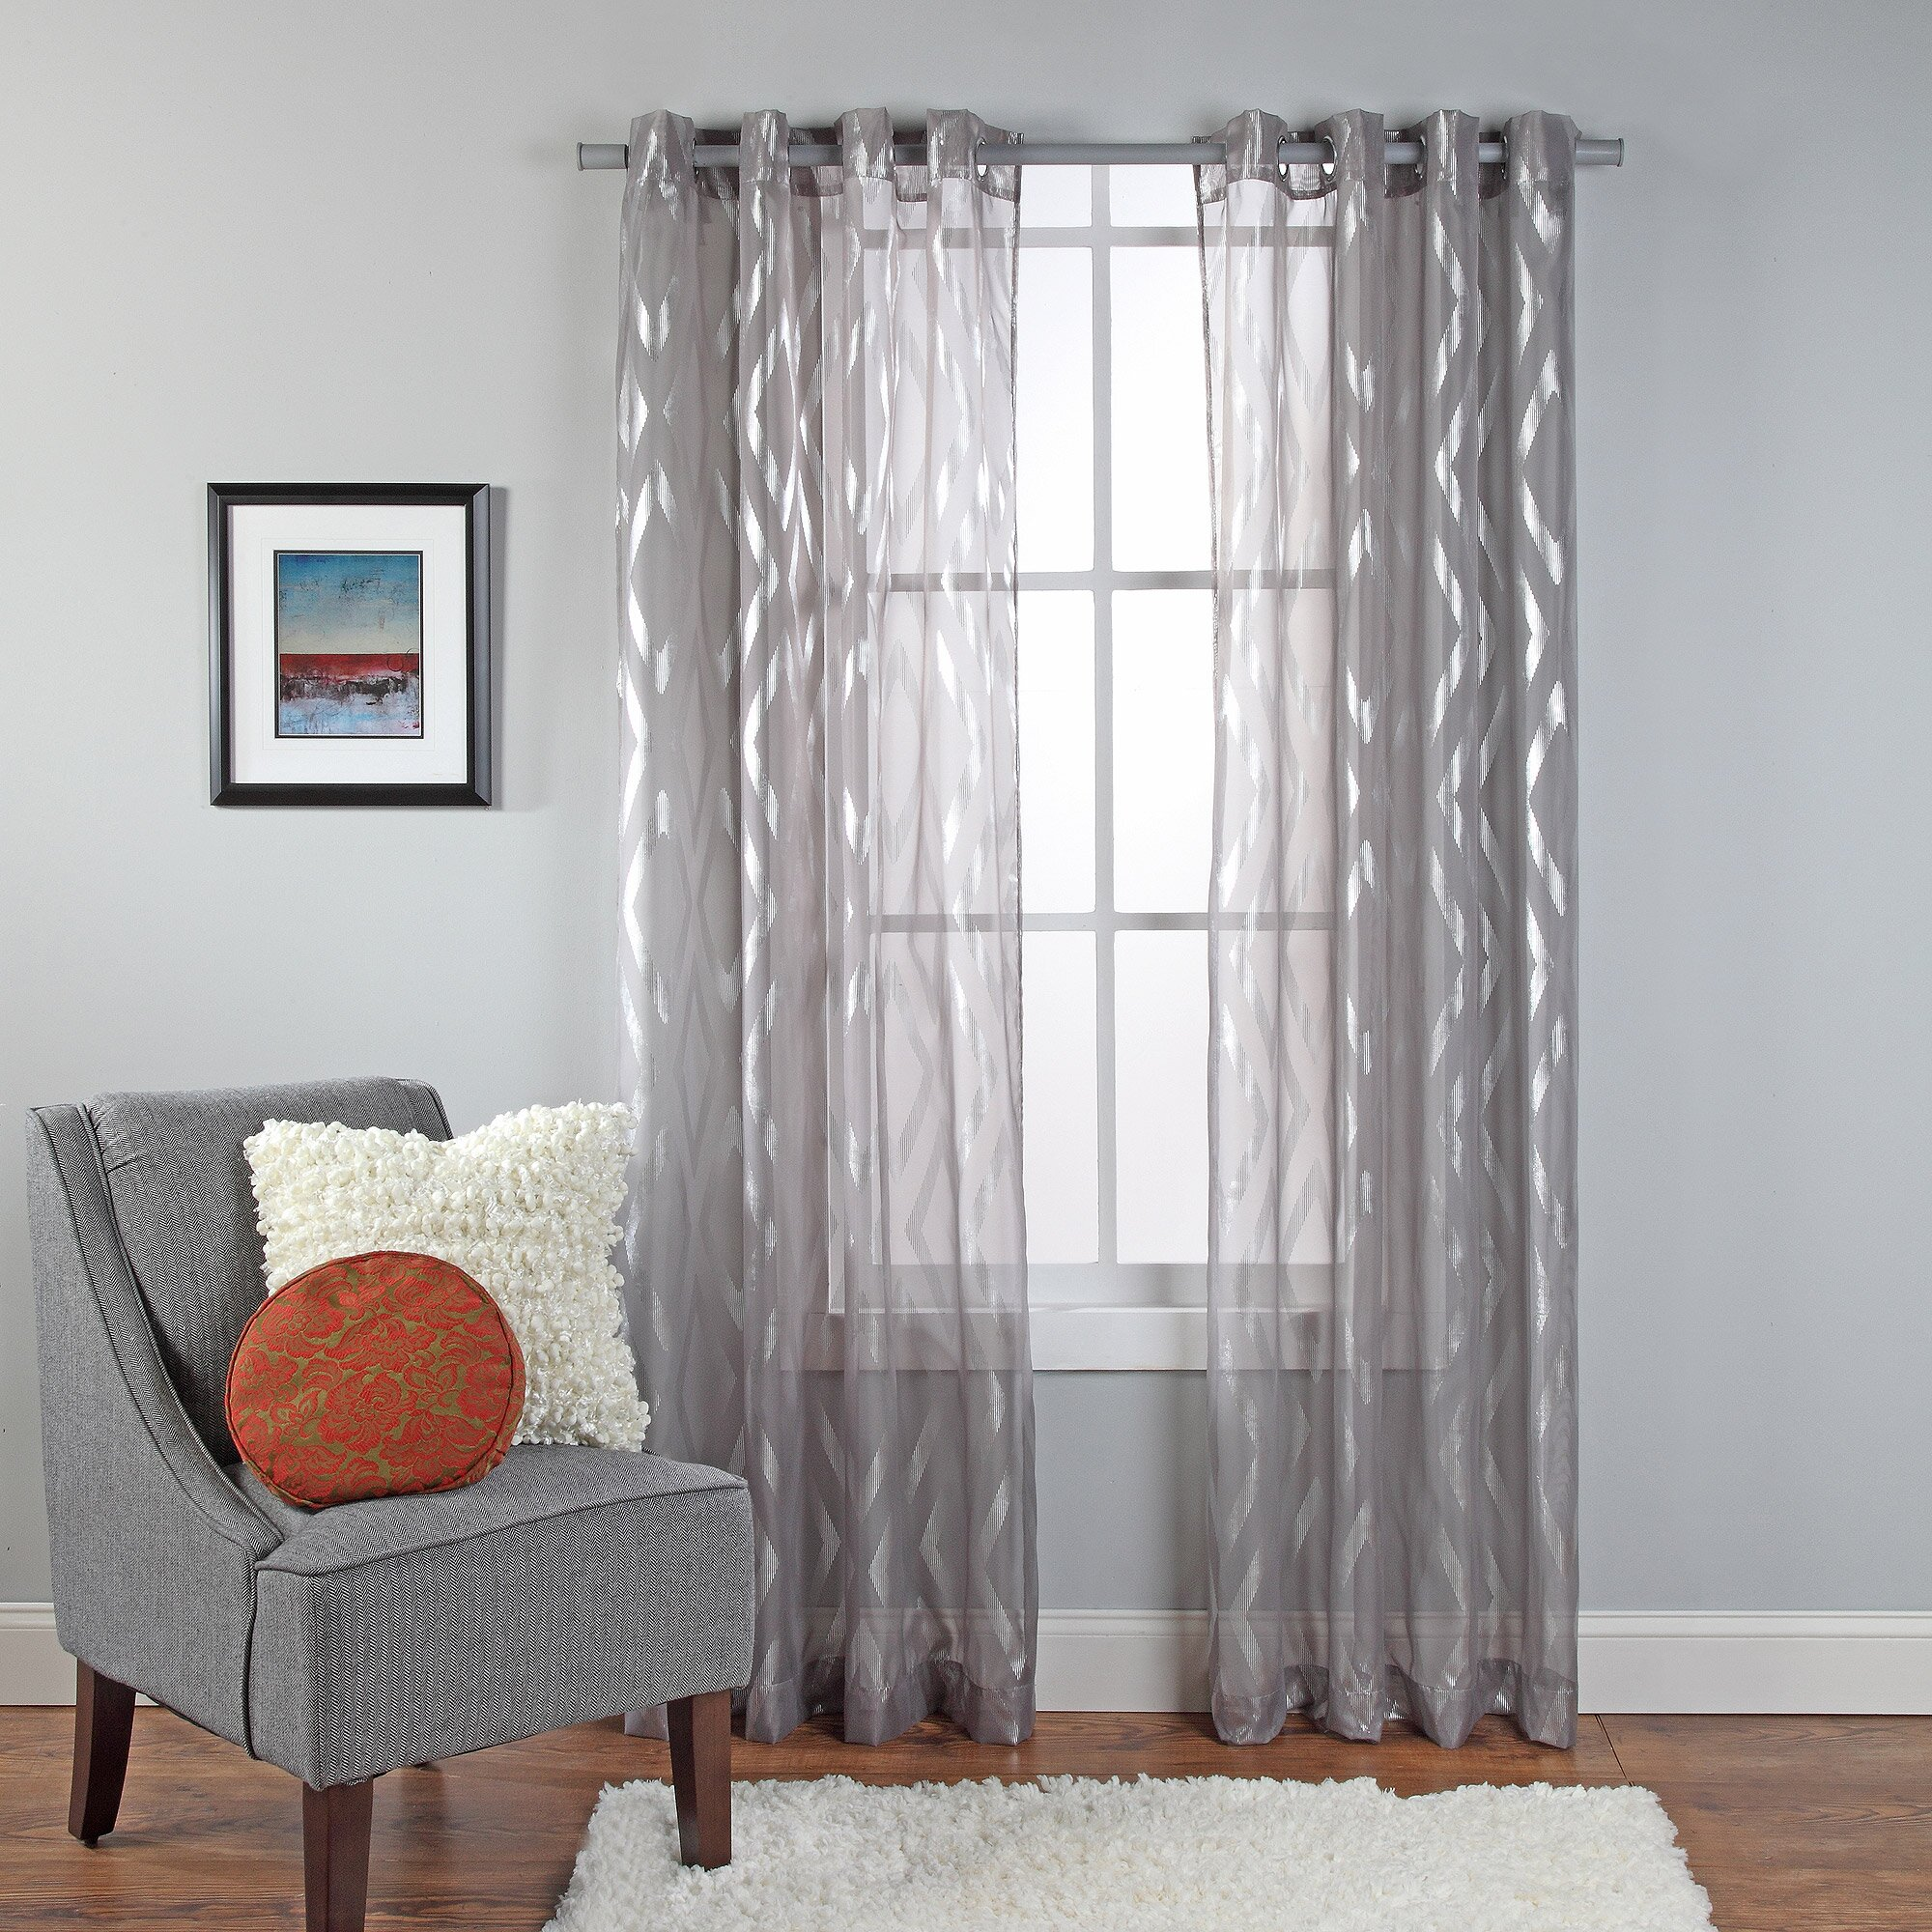 Brown Sheer Curtains Walmart | Walmart Curtain Panels | Walmart Drapes and Curtains